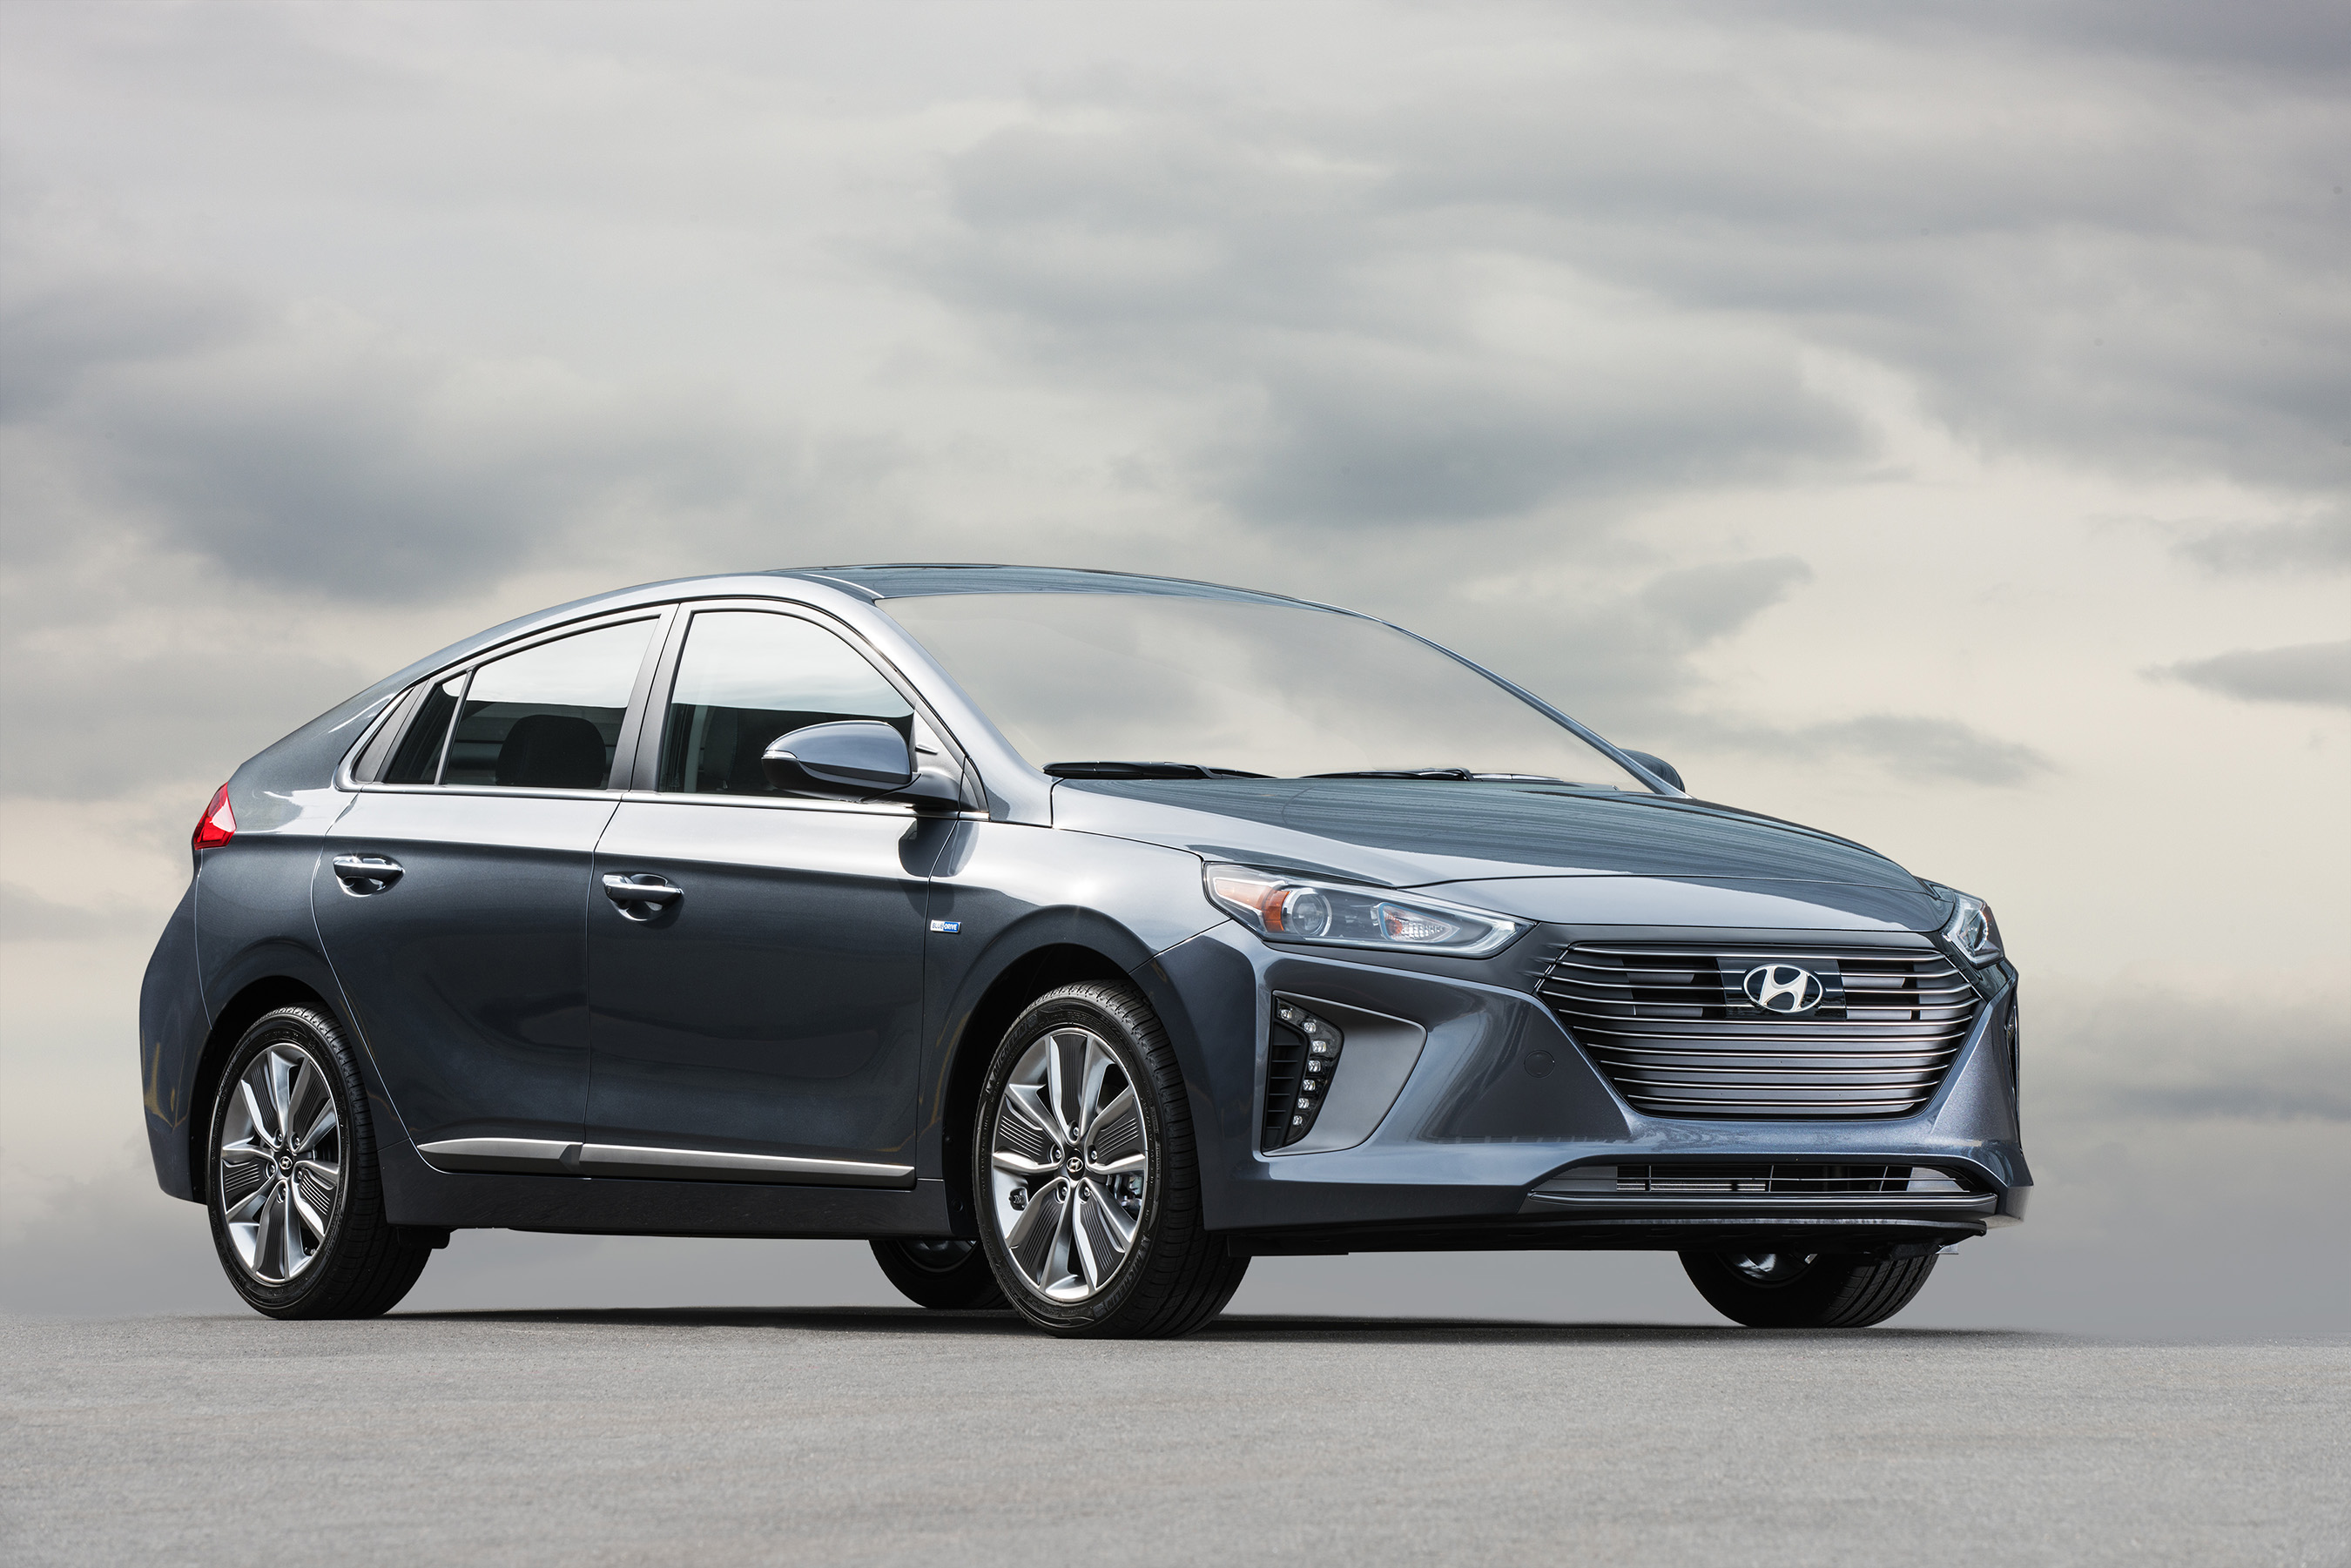 2017 HYUNDAI IONIQ MODEL LINEUP MAKES U.S. DEBUT AT NEW YORK INTERNATIONAL AUTO SHOW